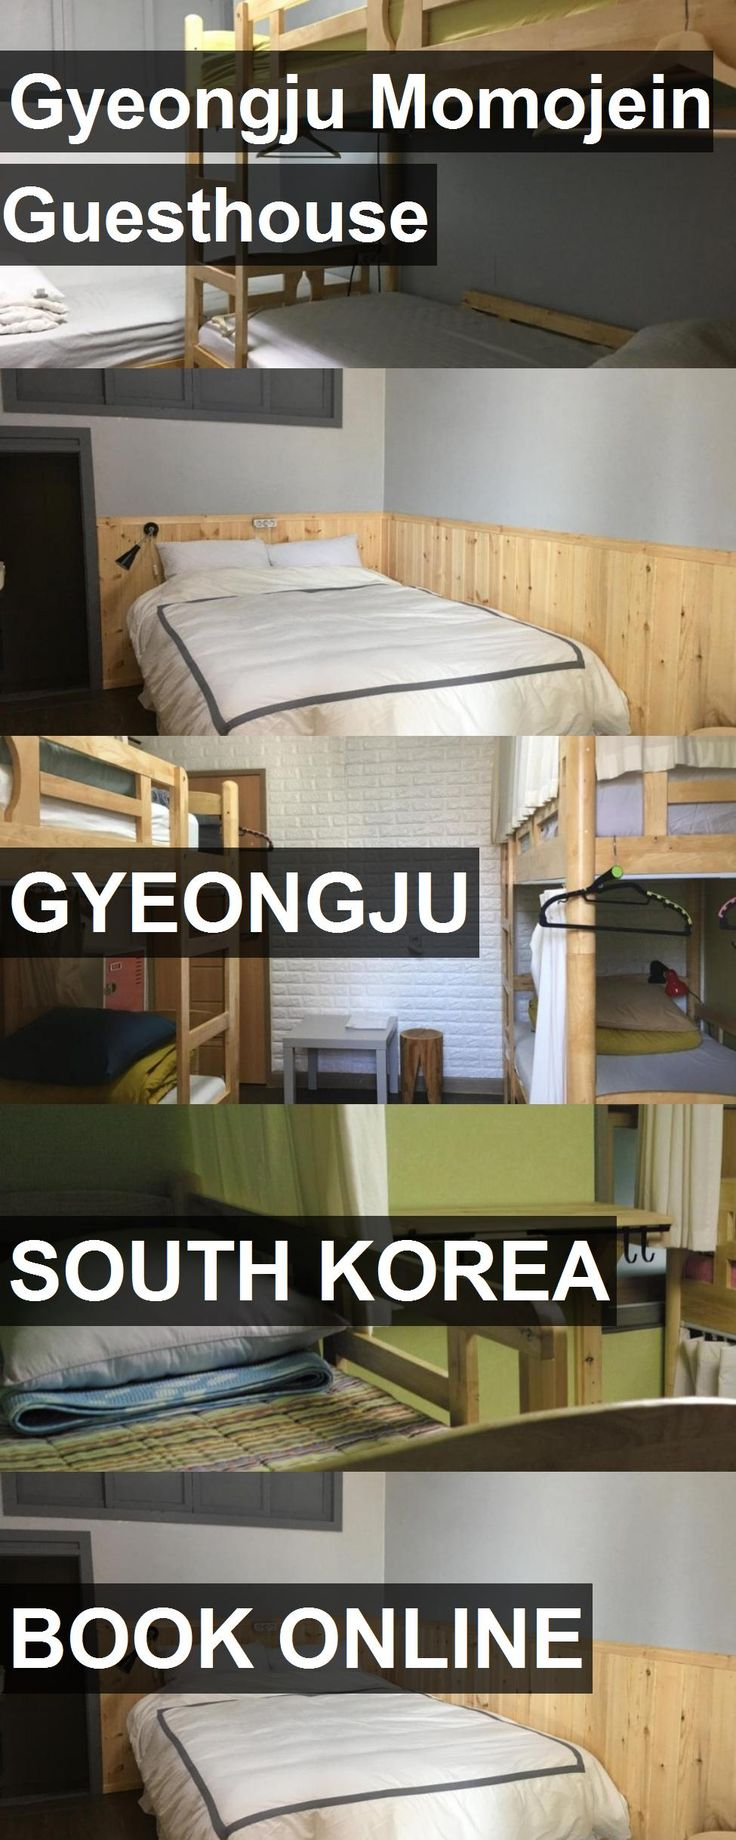 Hotel Gyeongju Momojein Guesthouse in Gyeongju, South Korea. For more information, photos, reviews and best prices please follow the link. #SouthKorea #Gyeongju #GyeongjuMomojeinGuesthouse #hotel #travel #vacation